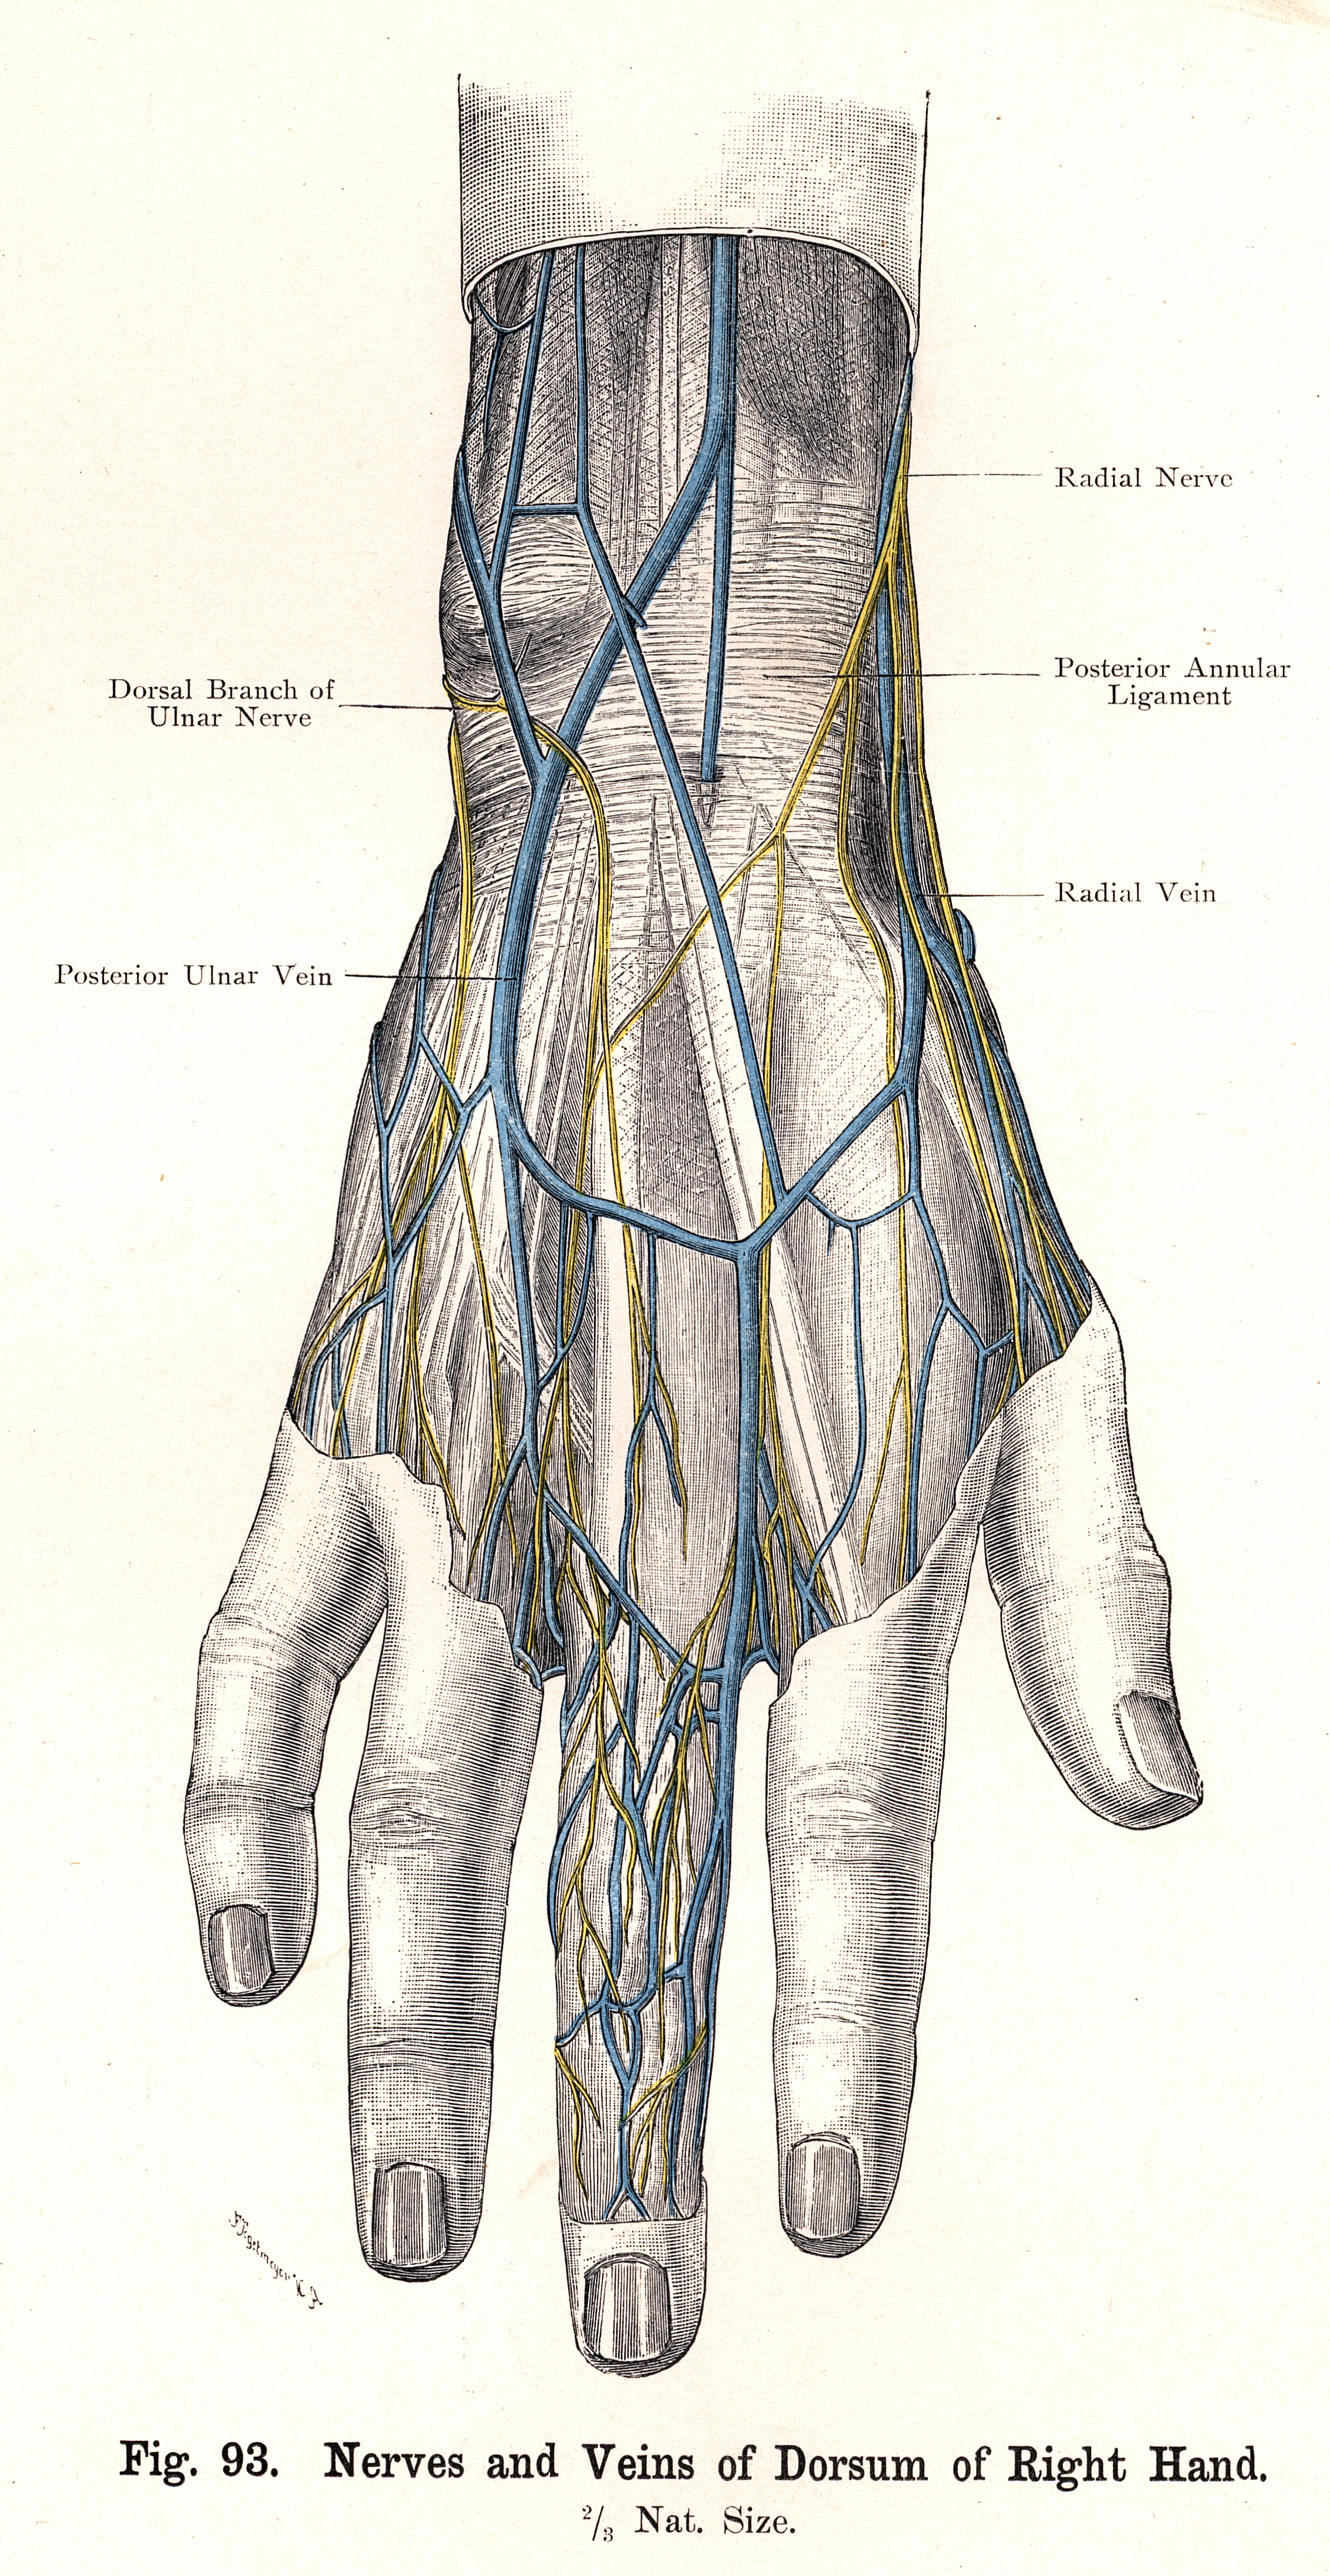 93. Nerves and Veins of Dorsum of Right Hand